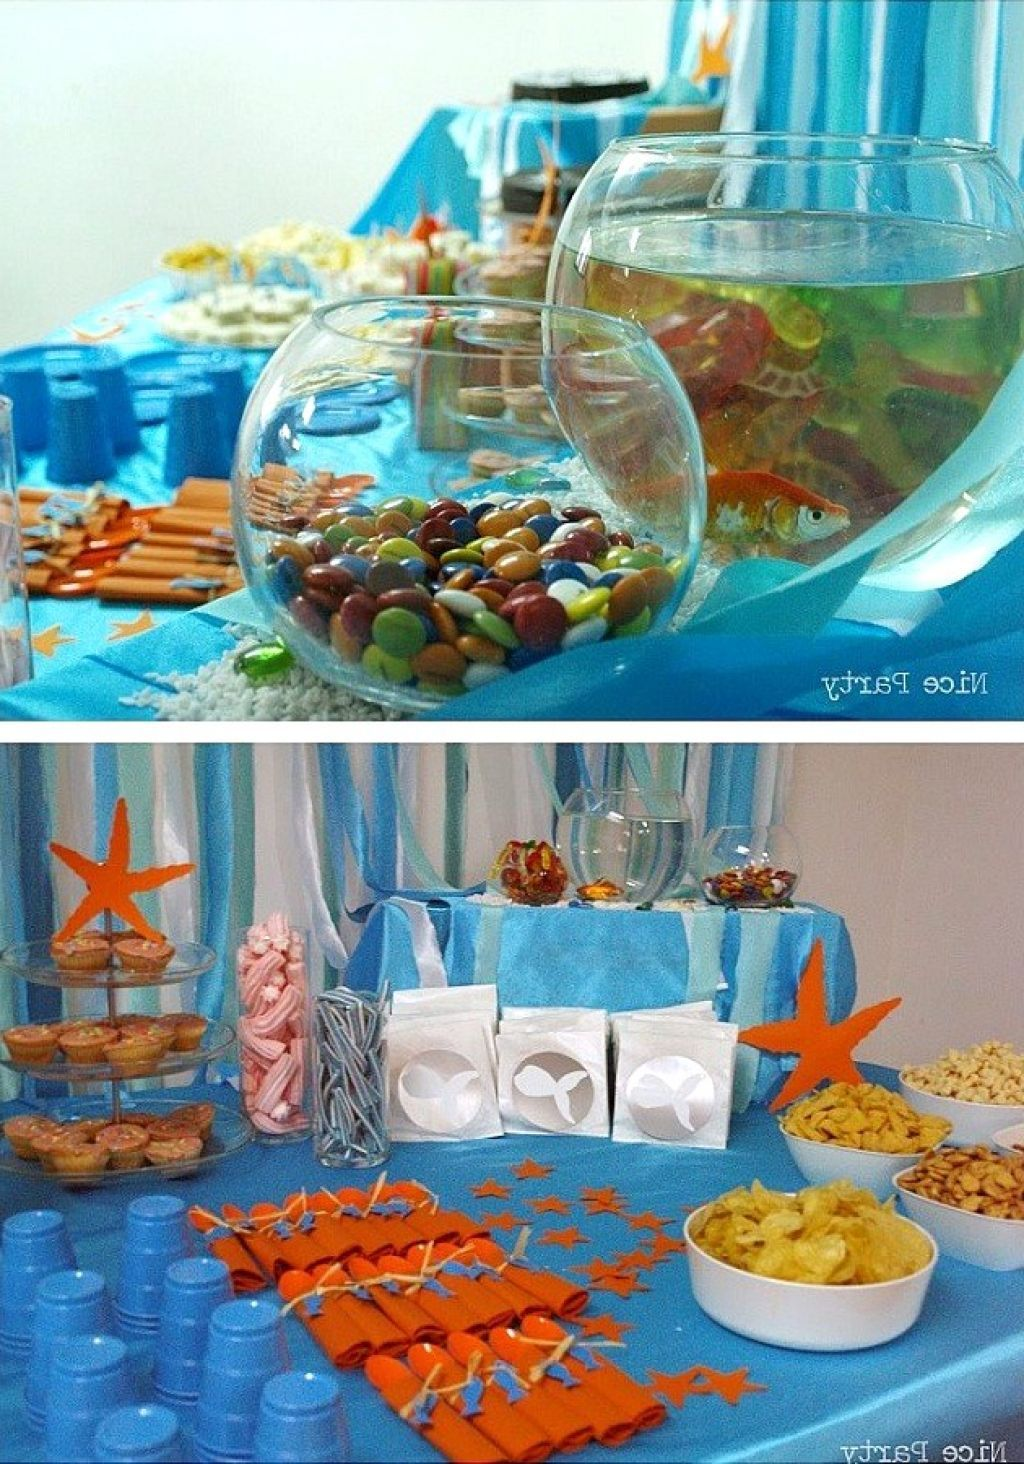 10+ Nemo Party Decorations Ideas | Nemo Birthday Party | Pinterest ...